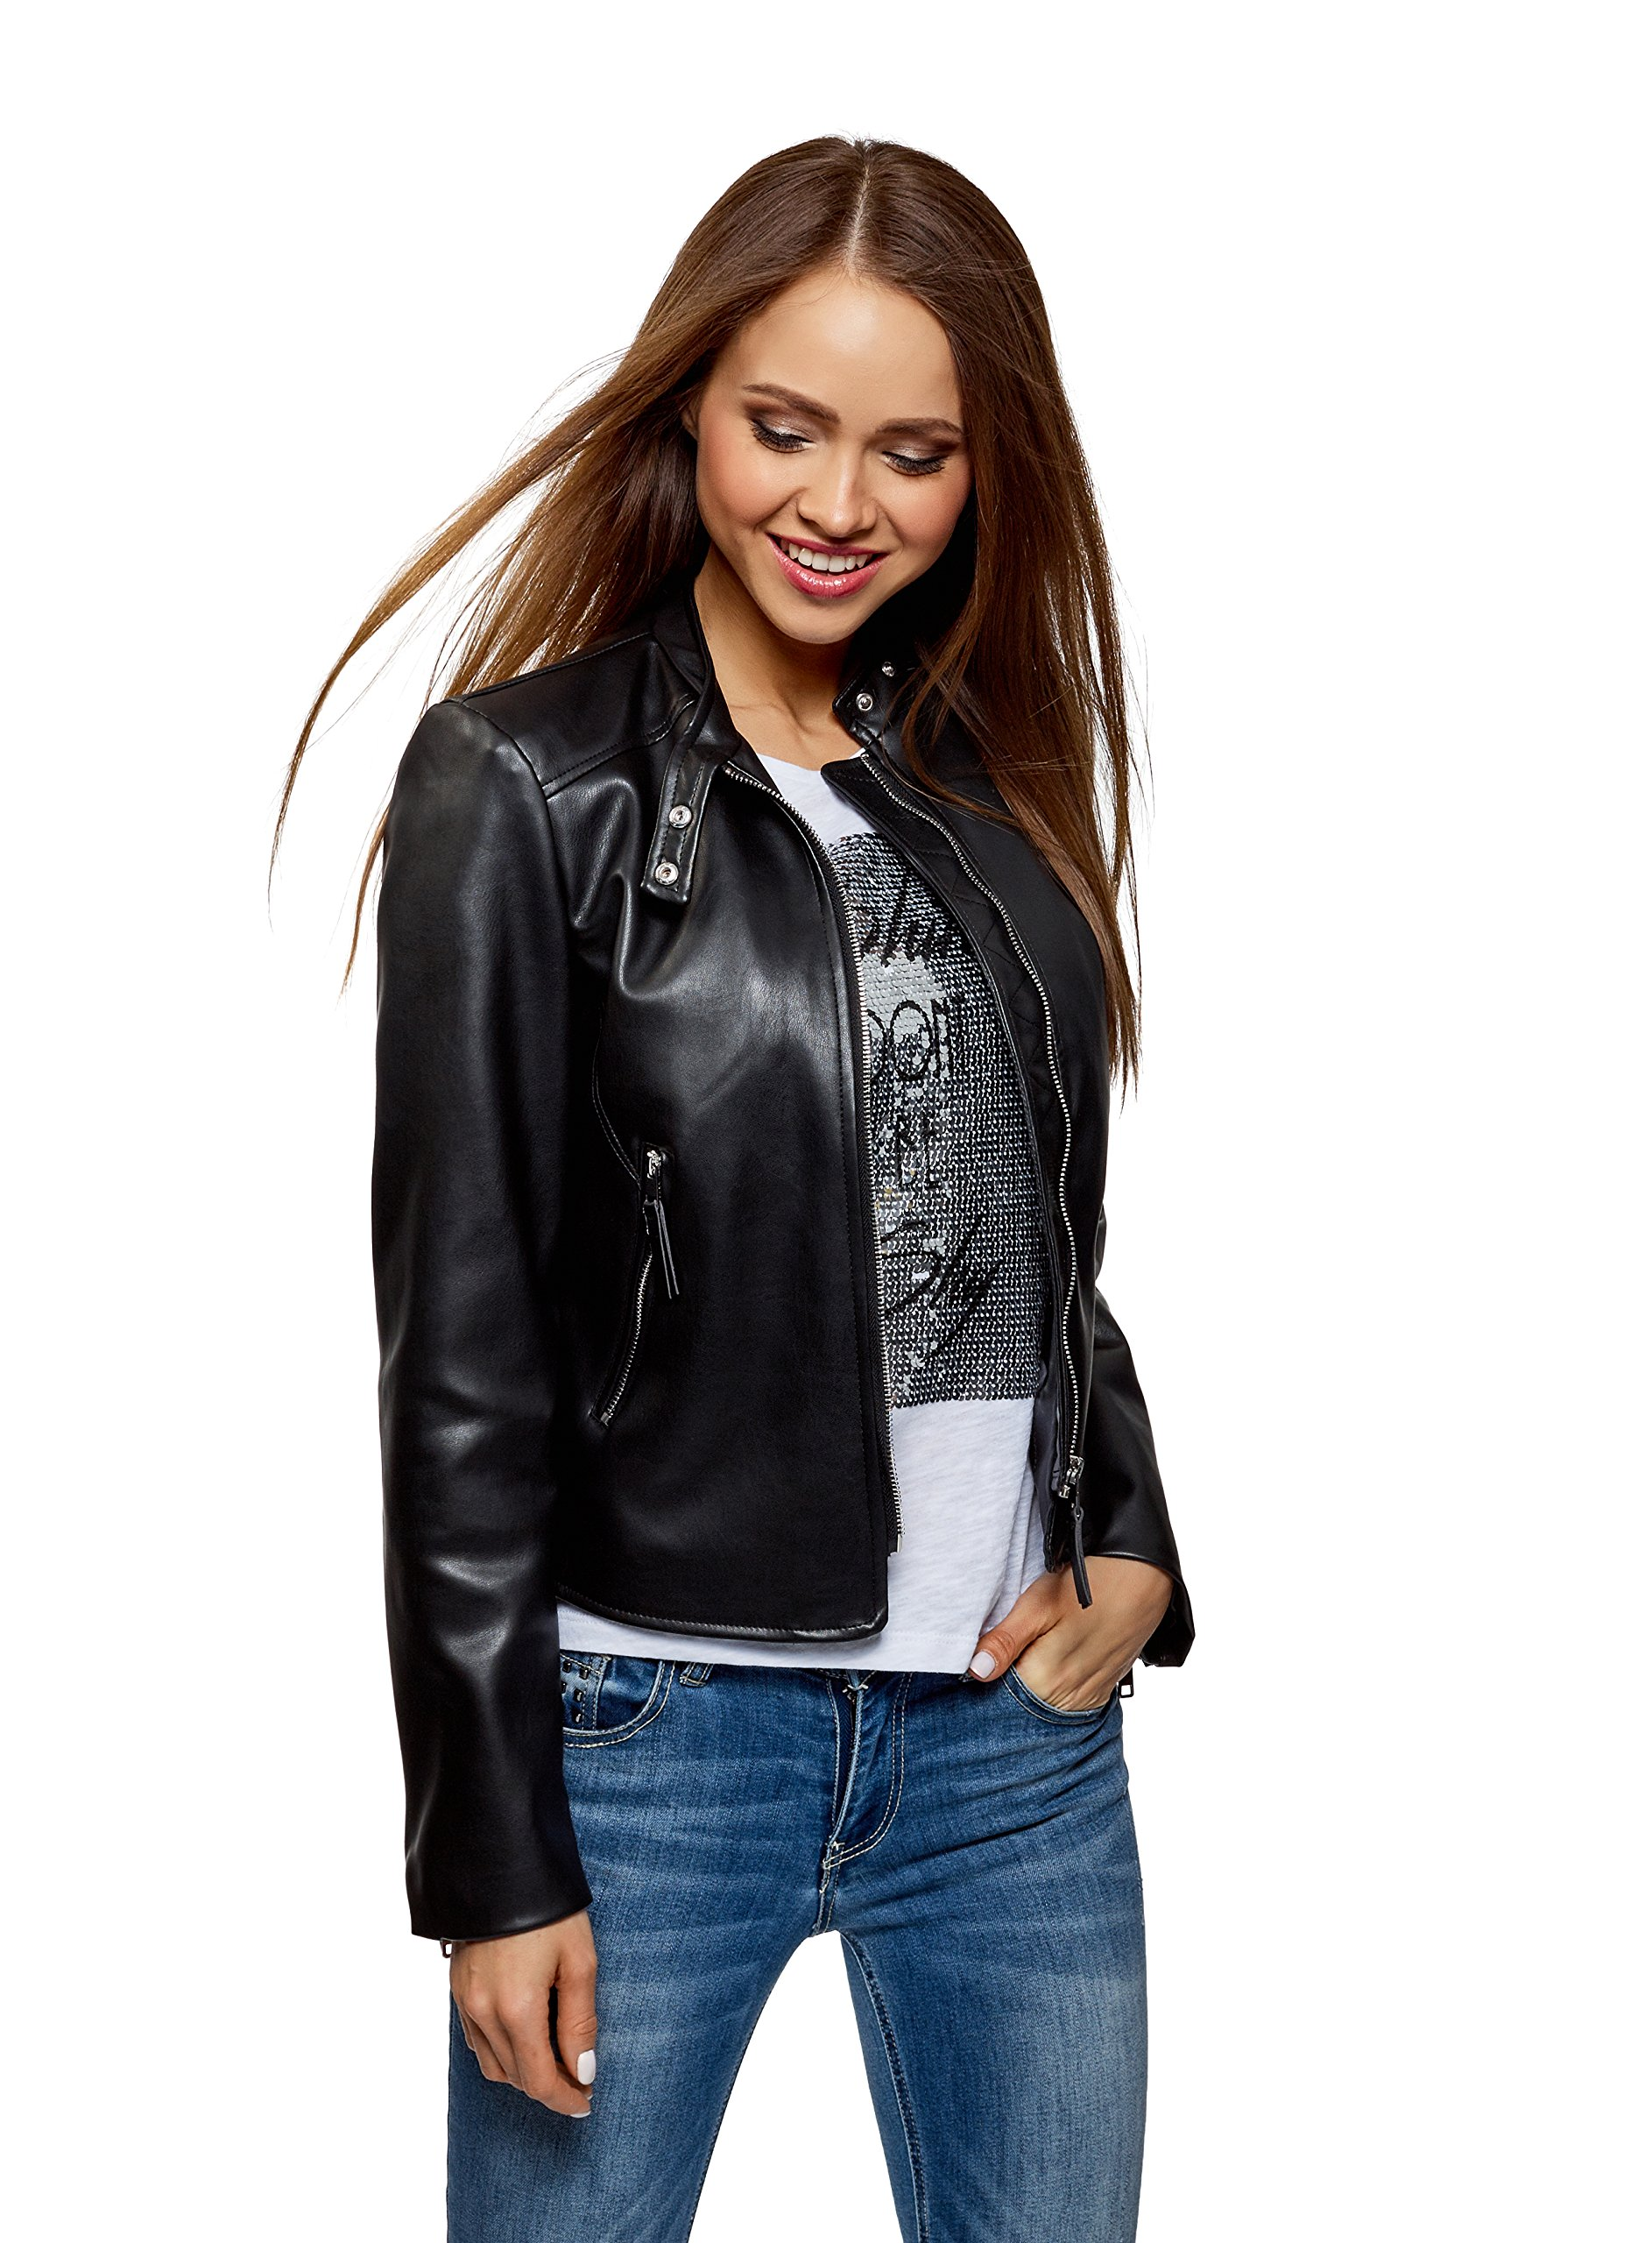 oodji Ultra Women's Faux Leather Jacket with Stand Collar, Black, 2 by oodji